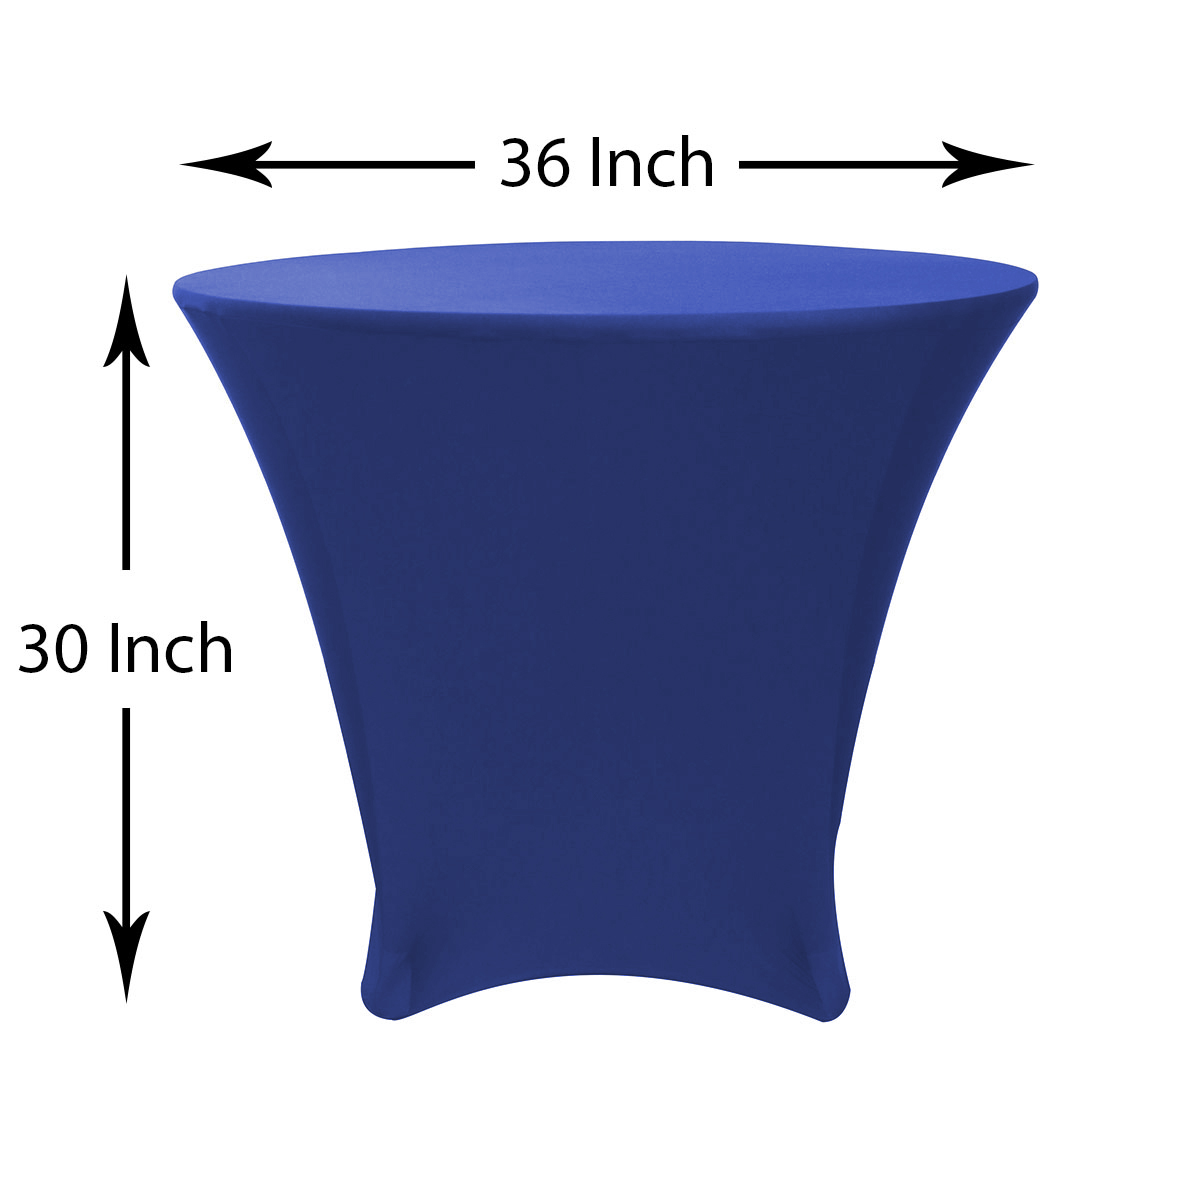 36-30-inch-lowboy-cocktail-spandex-table-covers-royal-dimensions.jpg